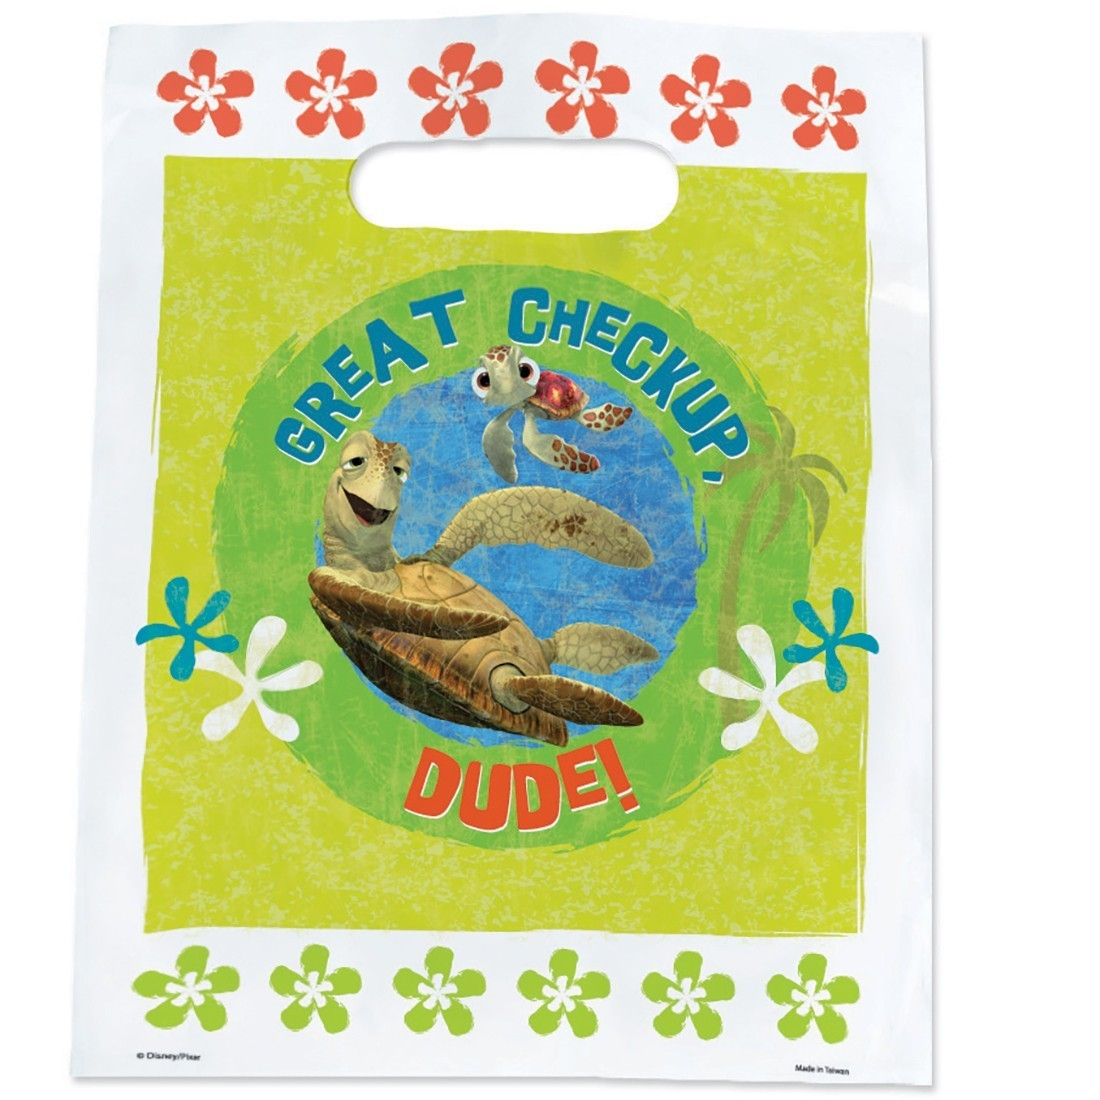 Disney Nemo Great Check Up Dude Bags               [image]